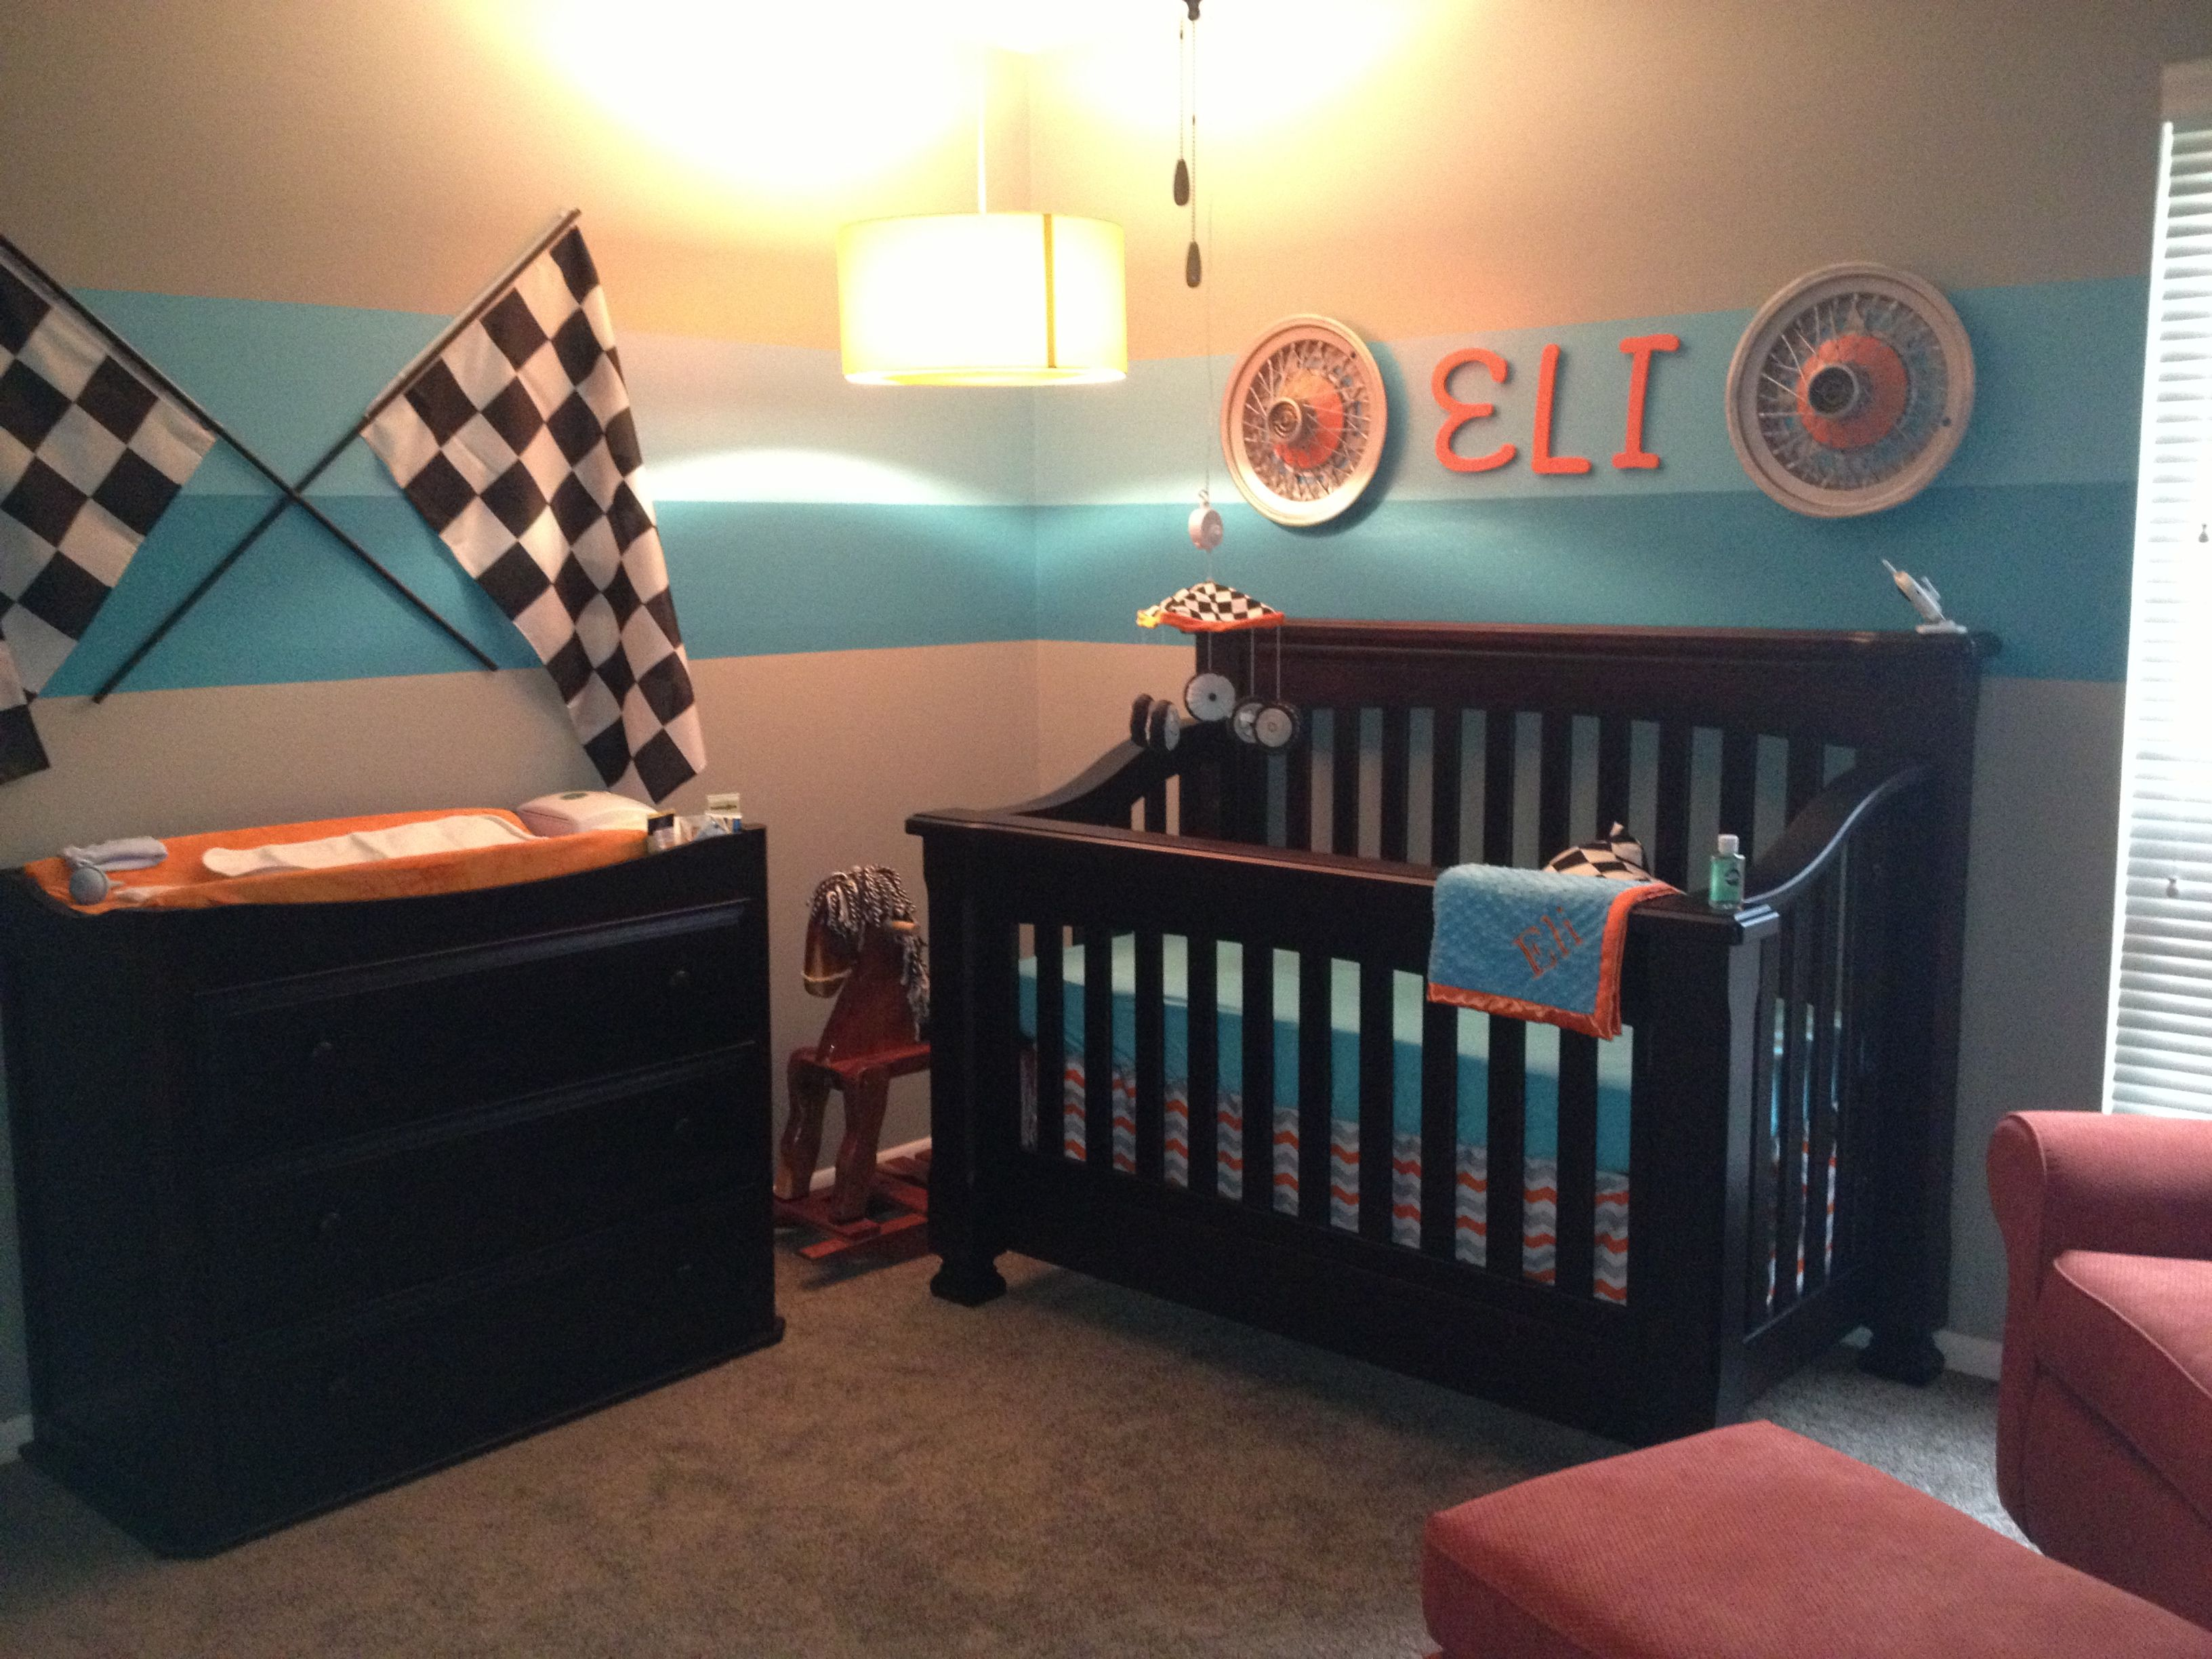 Eli's race car baby room! It's perfect. Nursery room boy